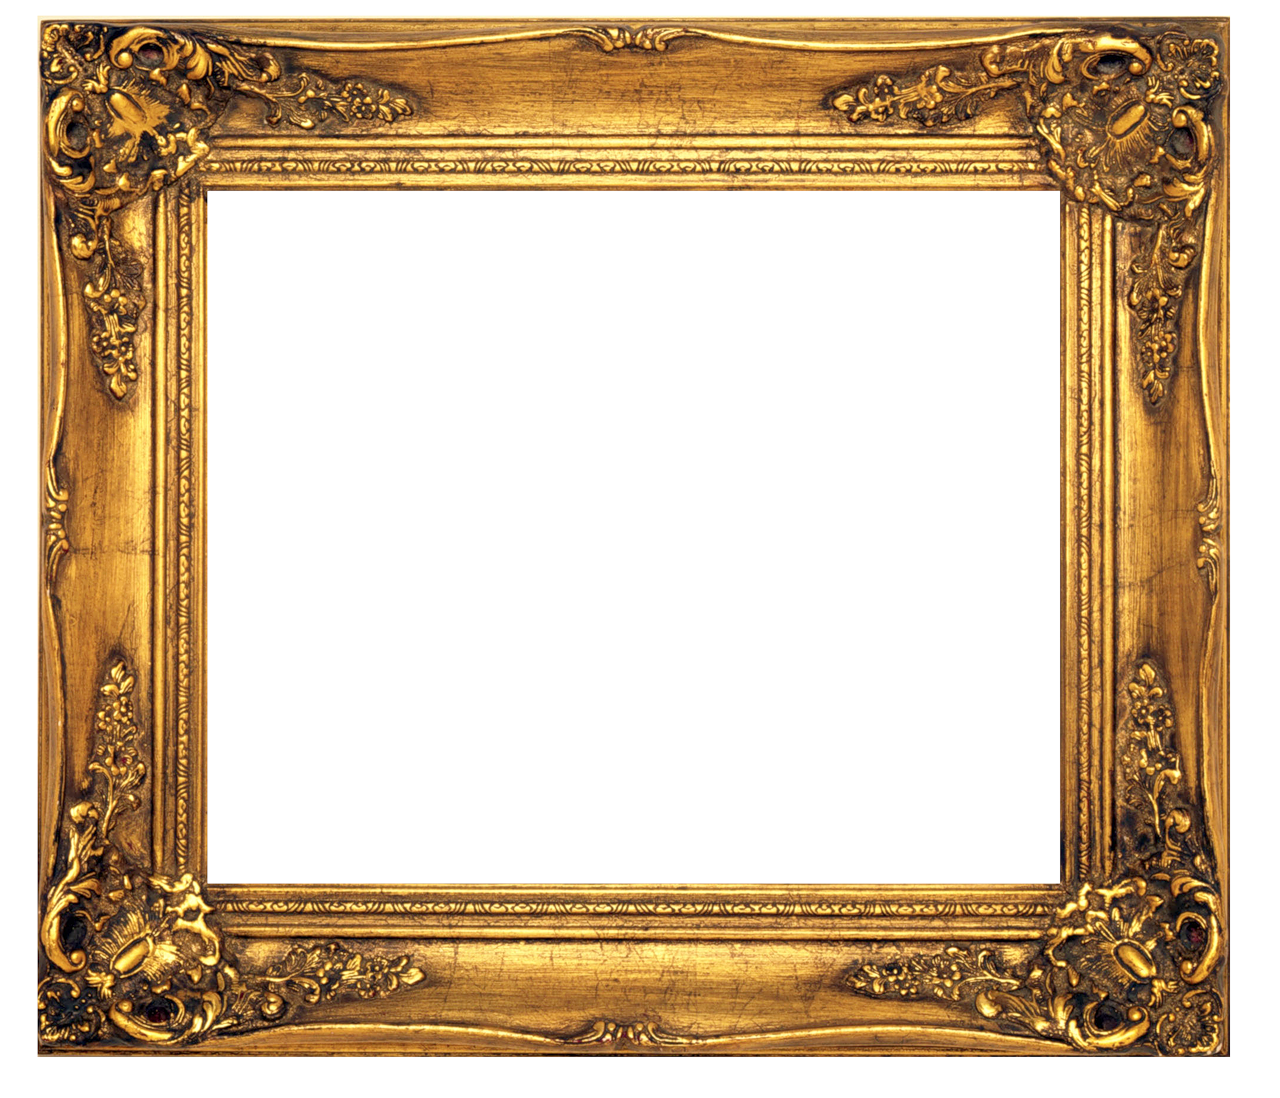 Old Fashioned Picture Frames Stock photography Clip art ... (1280 x 1098 Pixel)